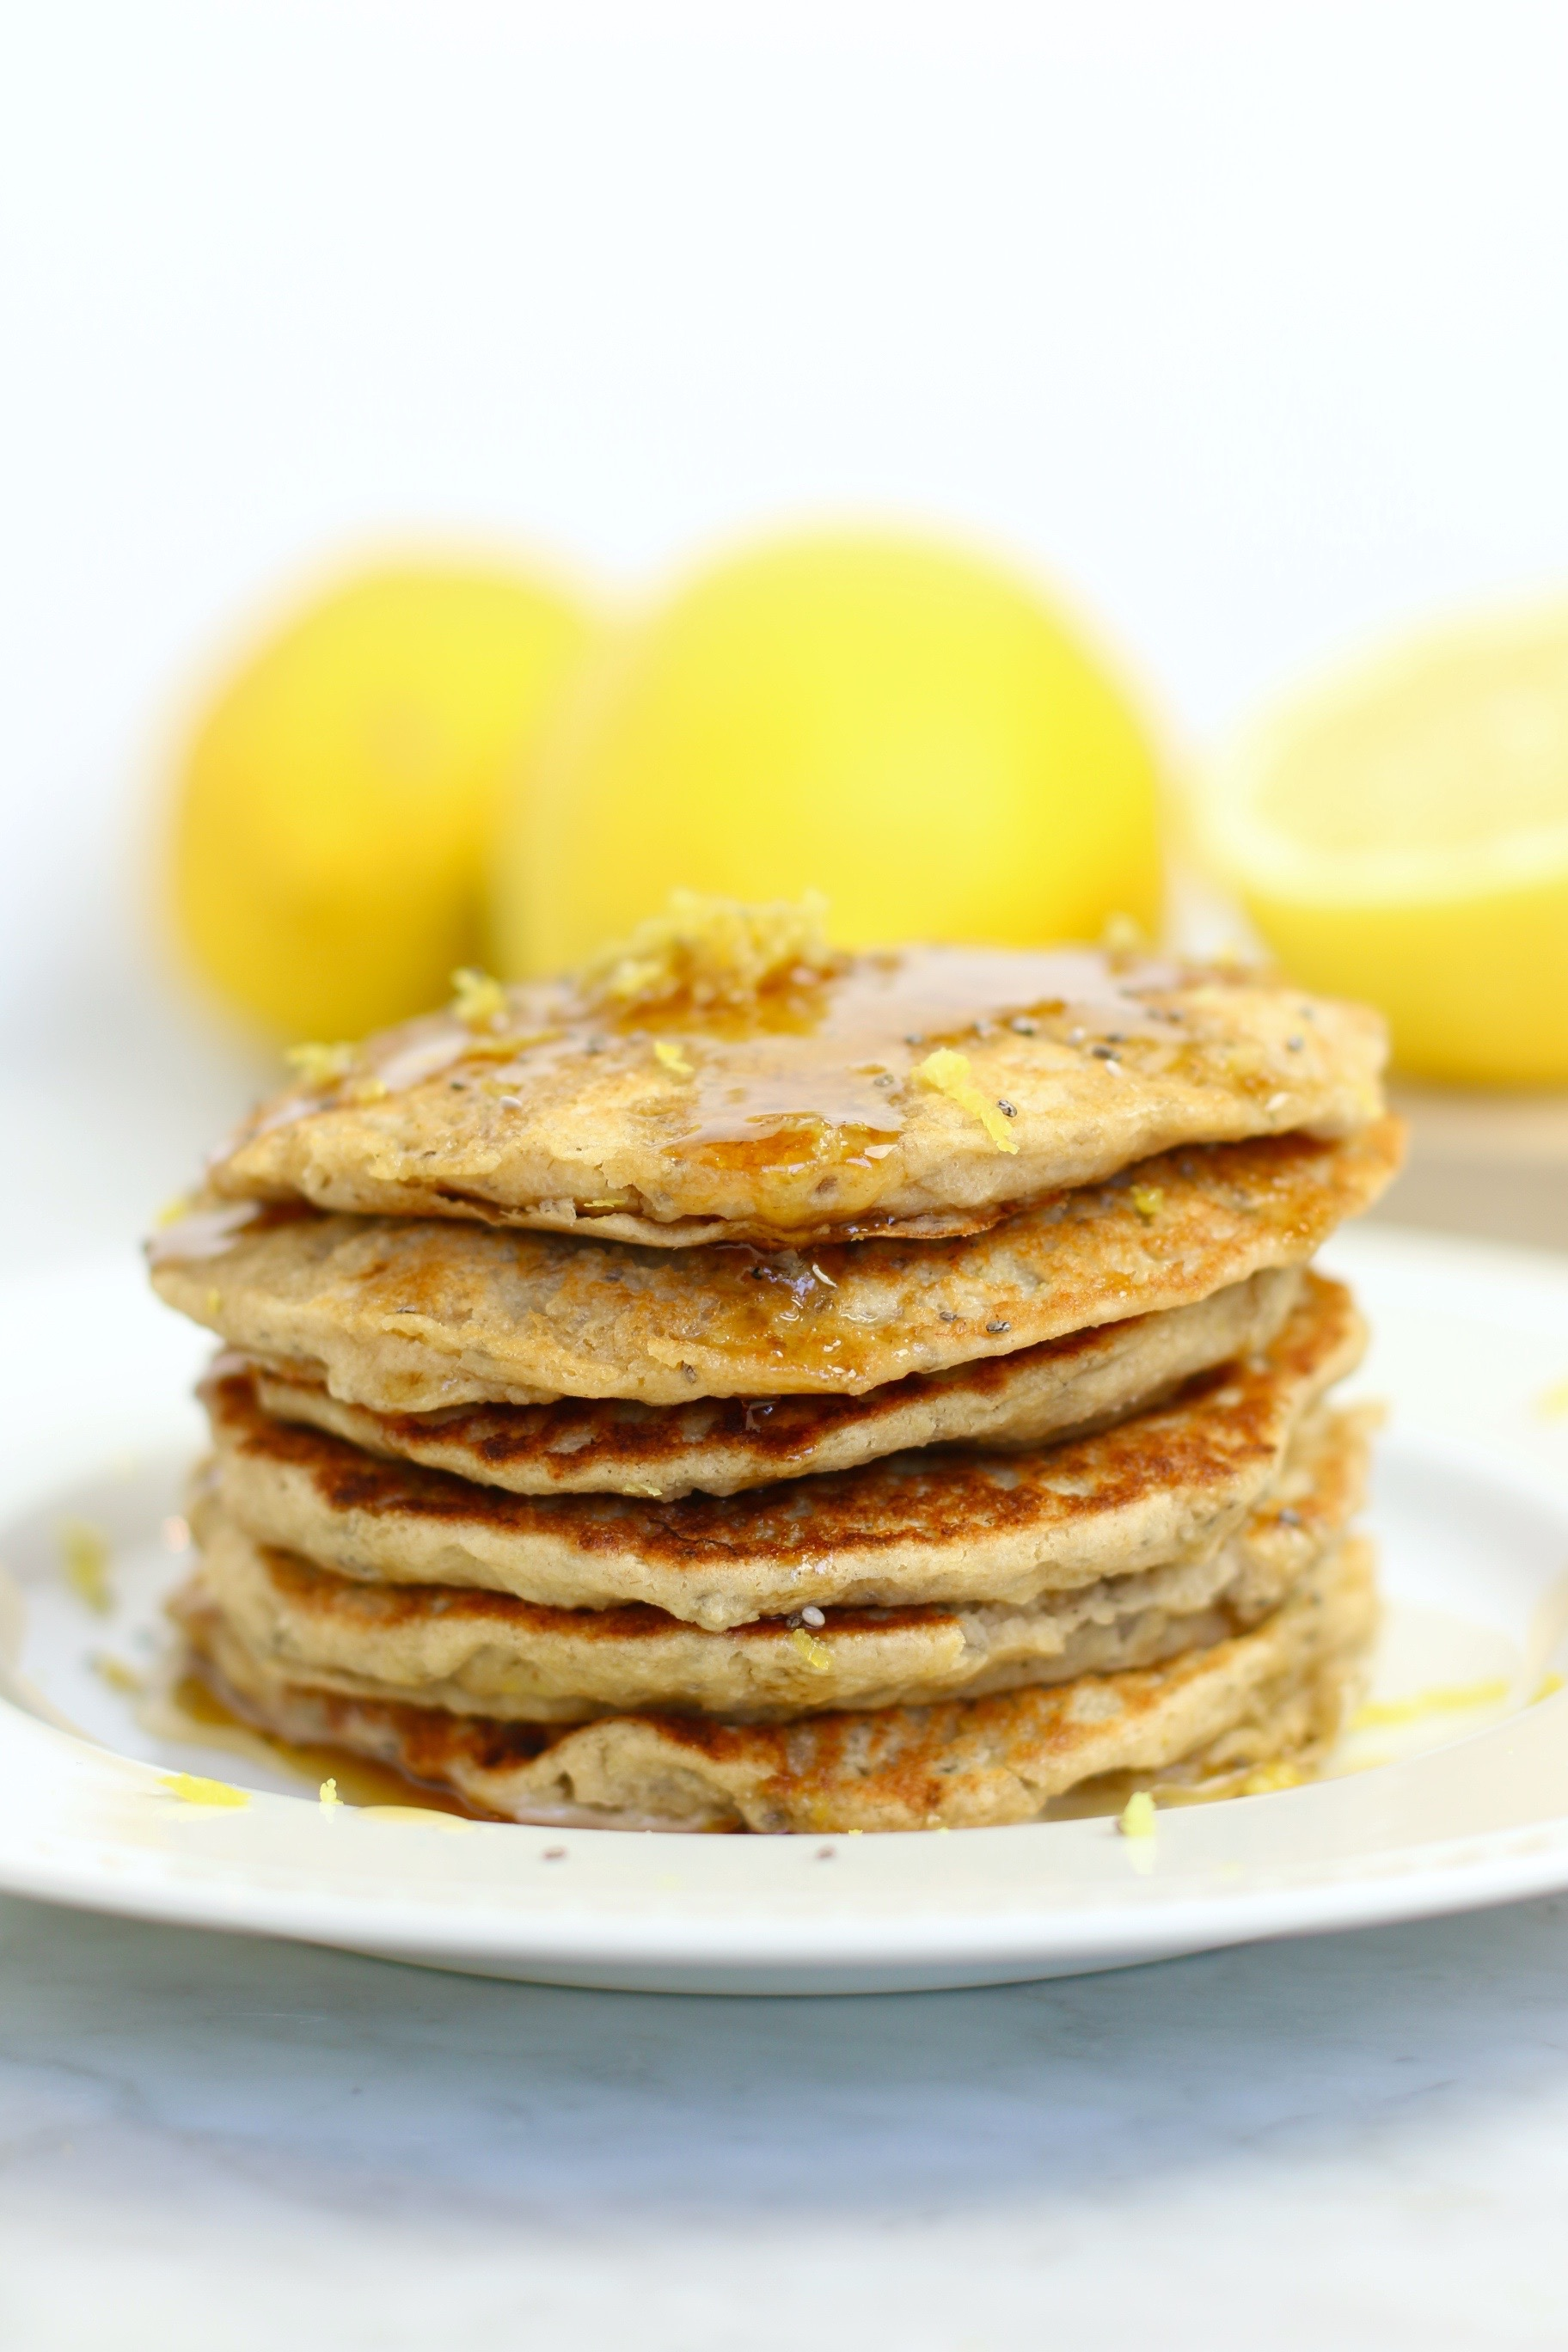 Chia Seed Lemon Pancakes - gluten-free and vegan